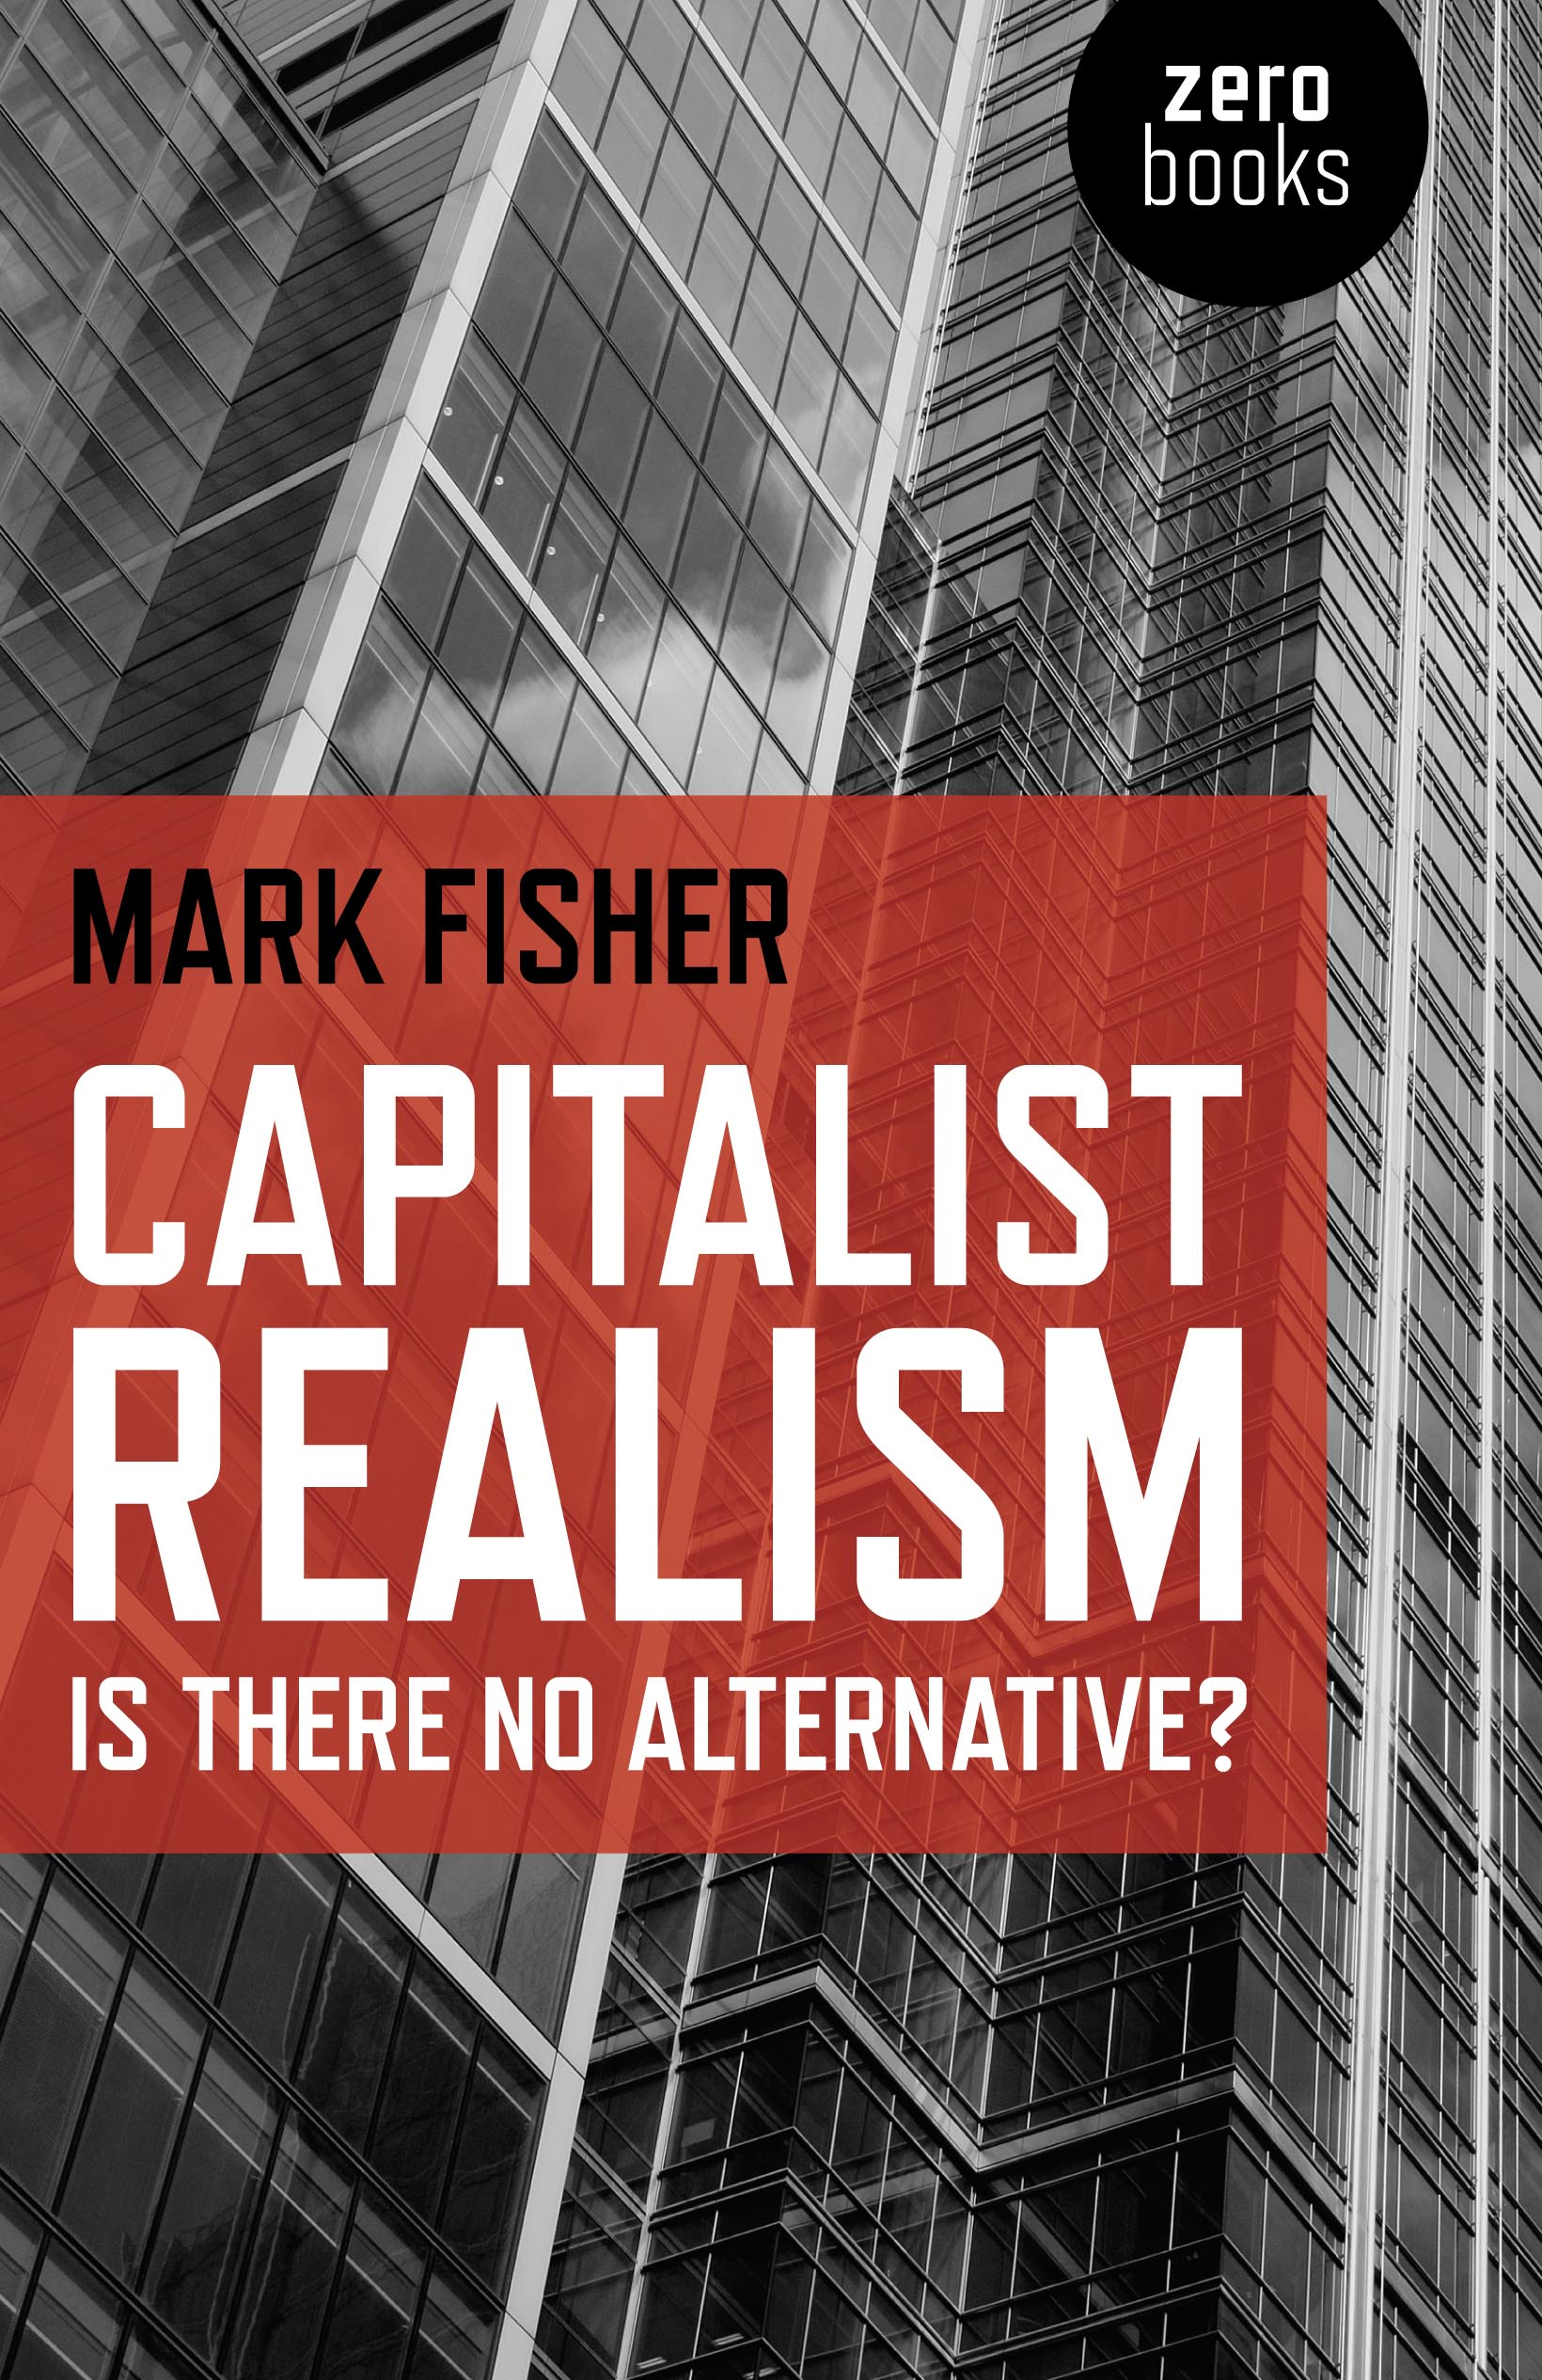 Cover image of Mark Fisher's Capitalist Realism